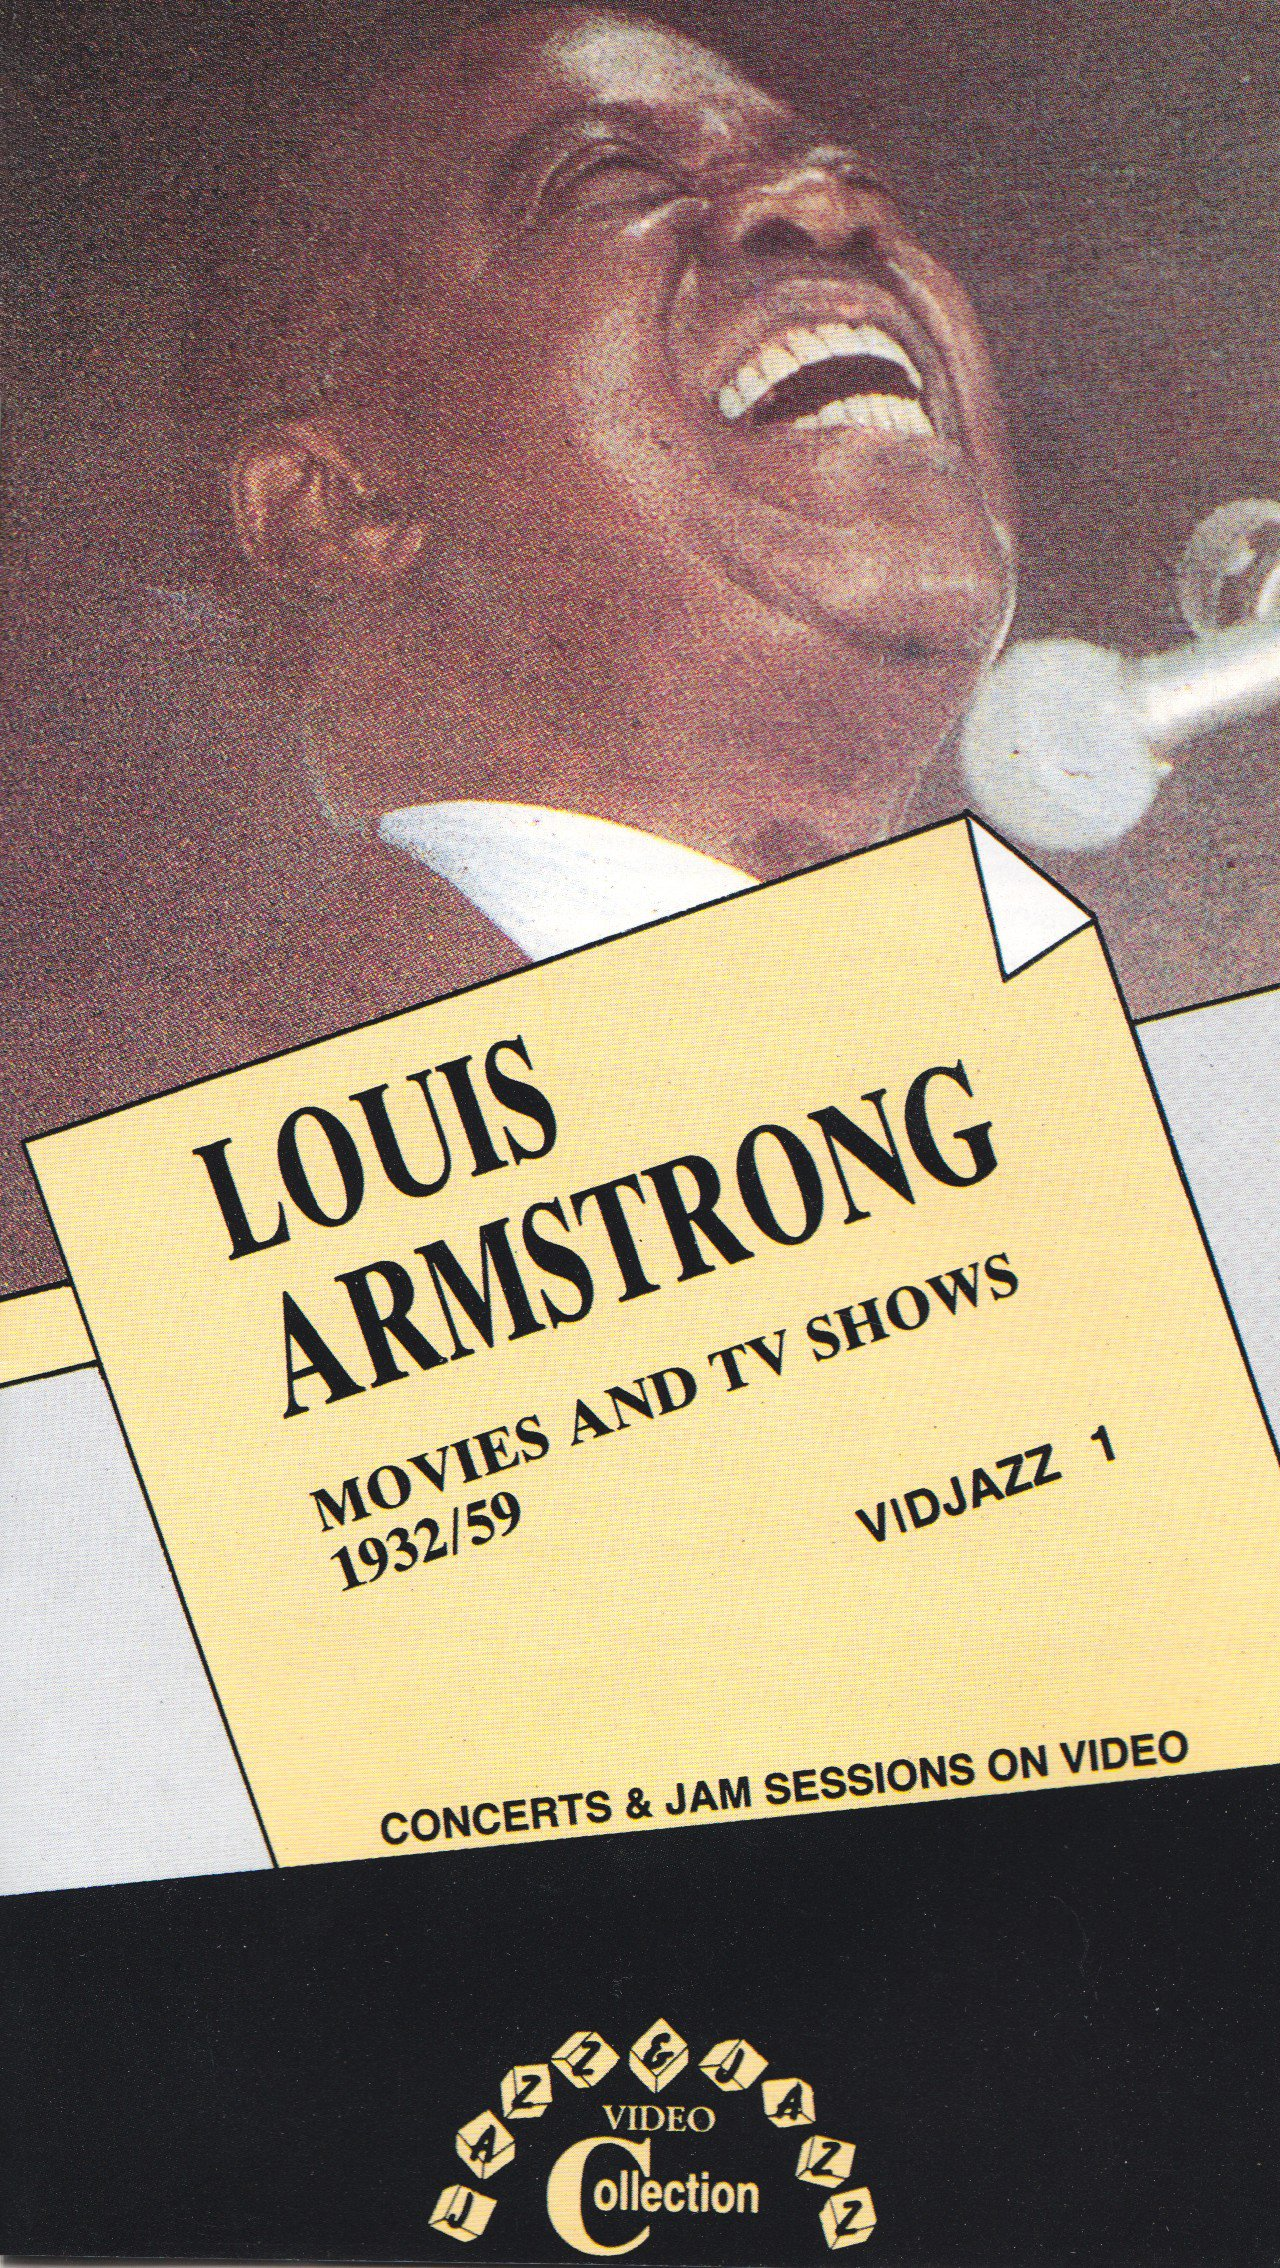 Louis Armstrong: Movies & TV Shows 1932/59 [VHS]